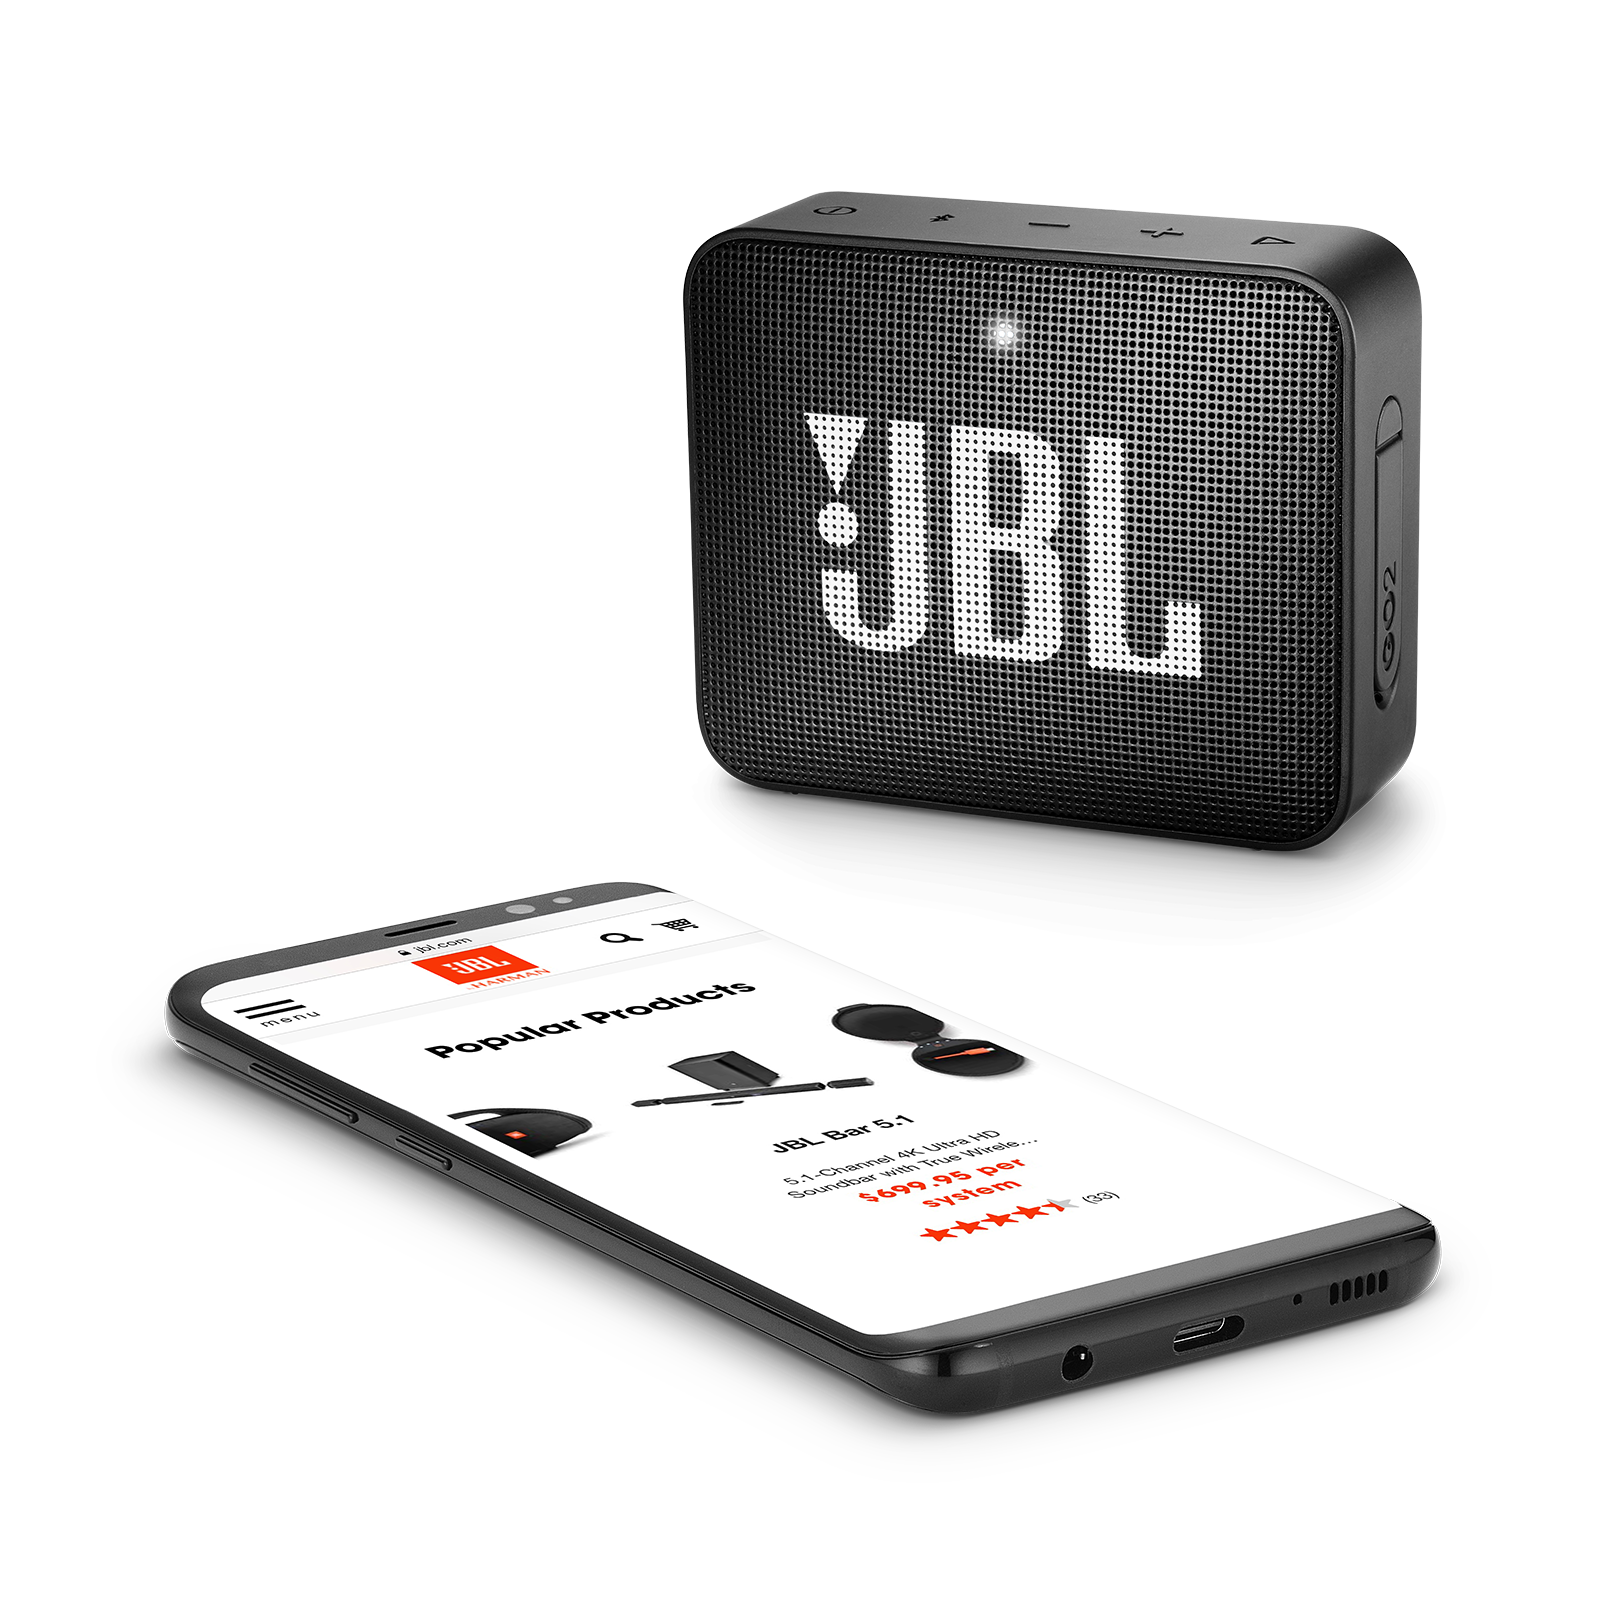 Jbl Go 2 Portable Bluetooth Speaker Harman Kardon Play Plus Pay Original